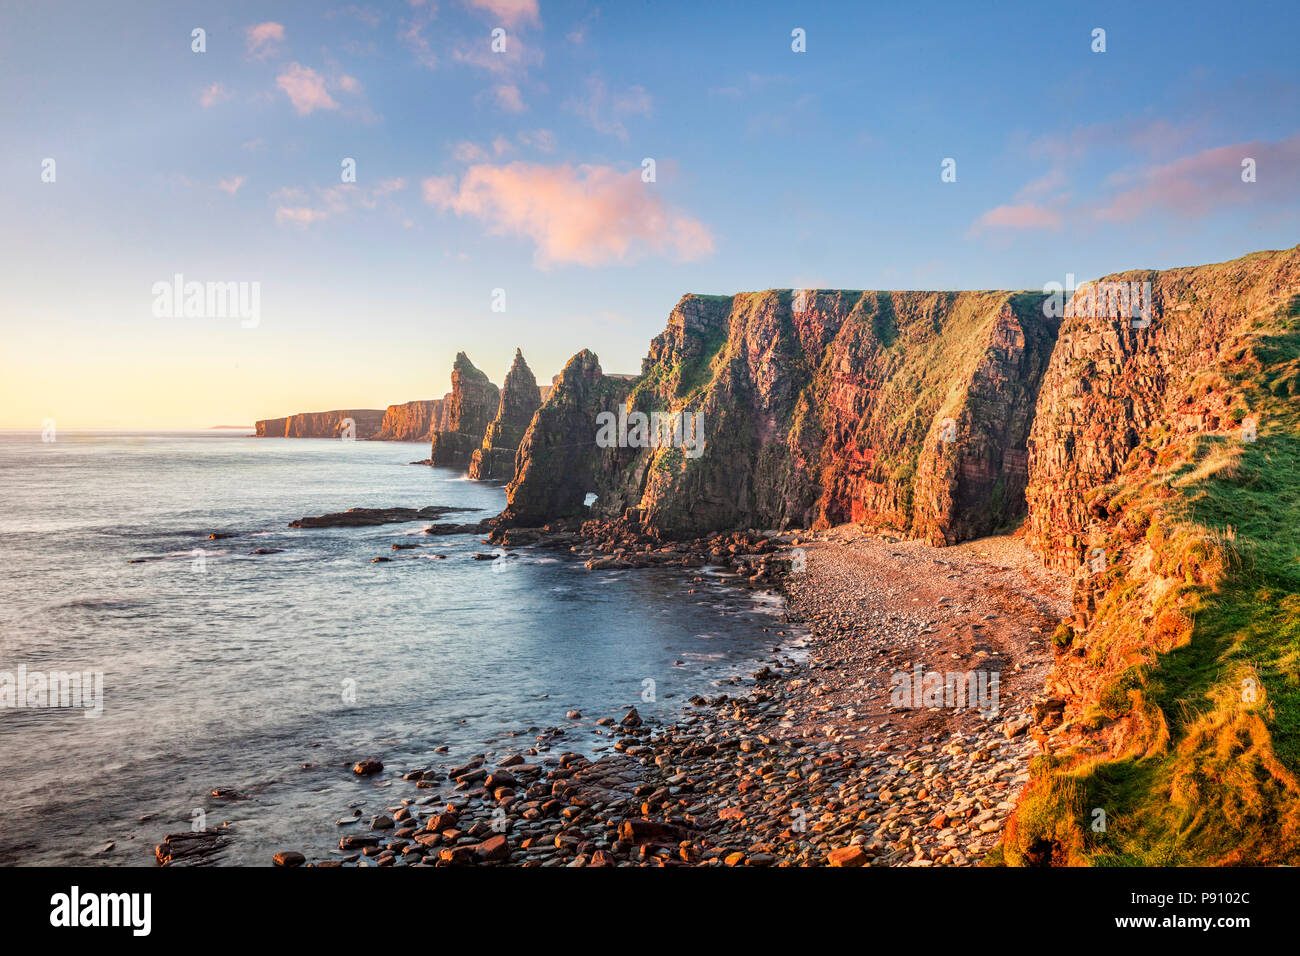 Sunrise at Stacks of Duncansby, Duncansby Head, John o' Groats,Caithness, Scotland, UK - Stock Image